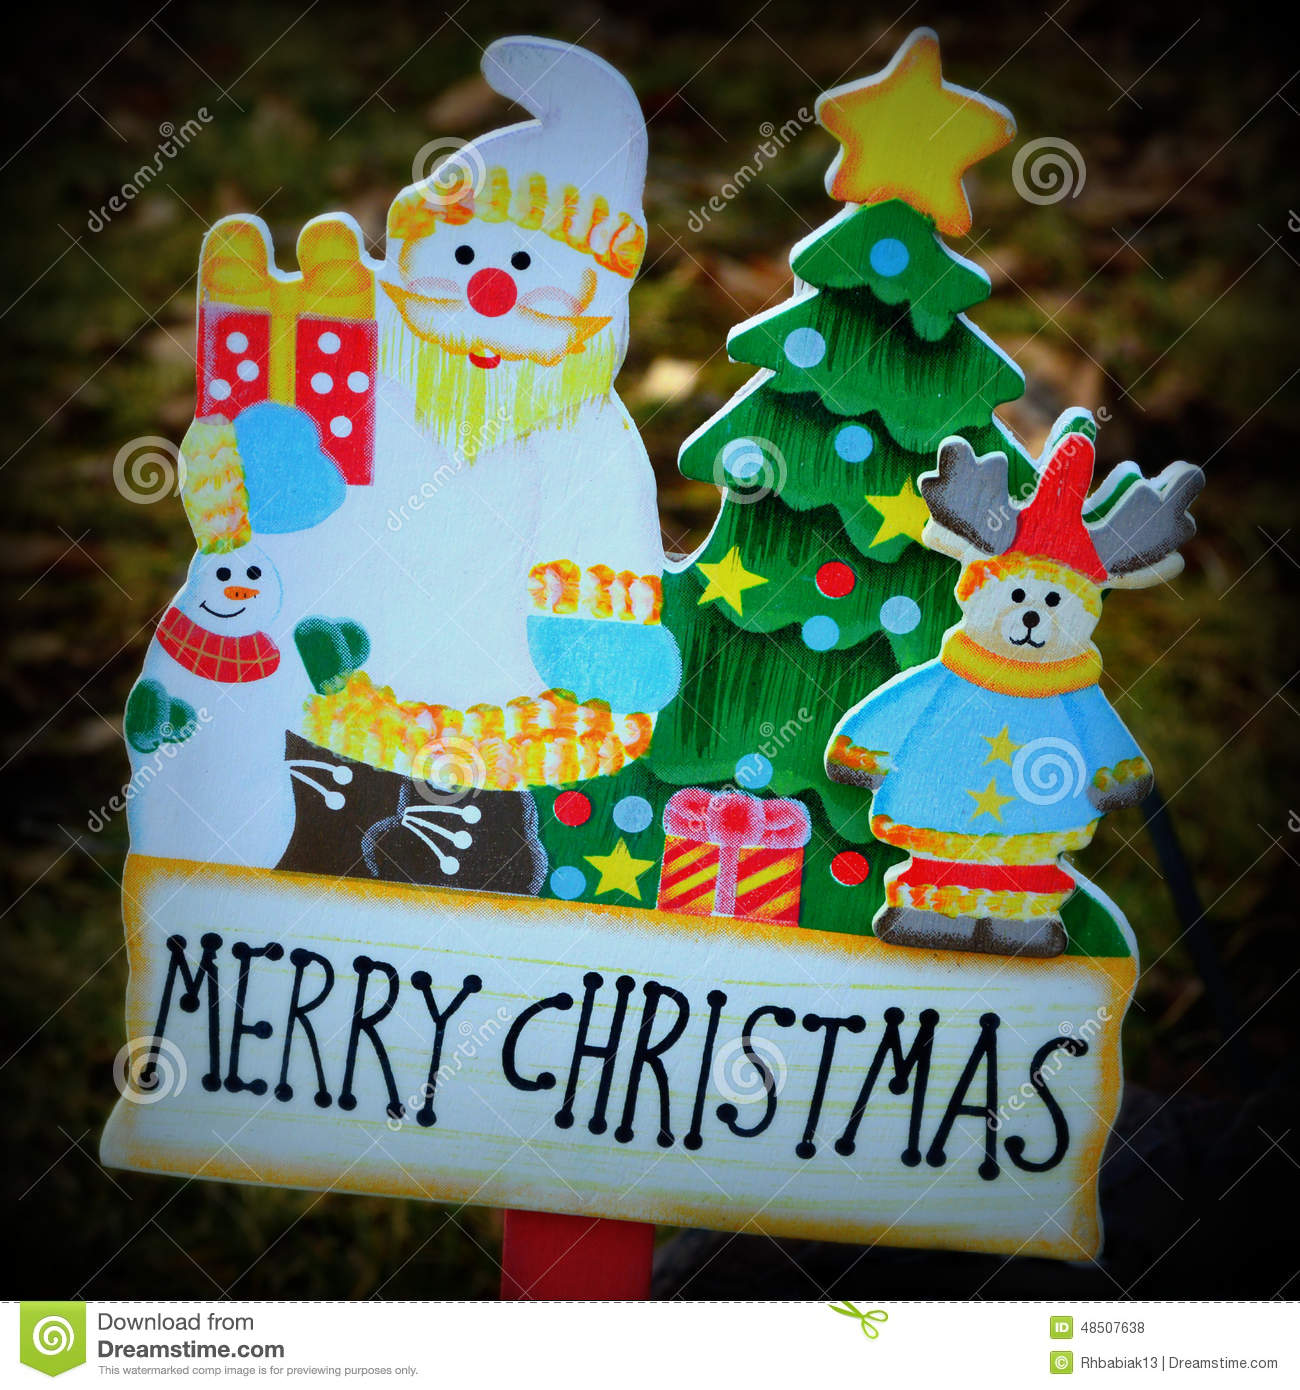 a hand painted wooden yard decoration with santa presents snowman teddy bear christmas tree with a star and words that say merry christmas